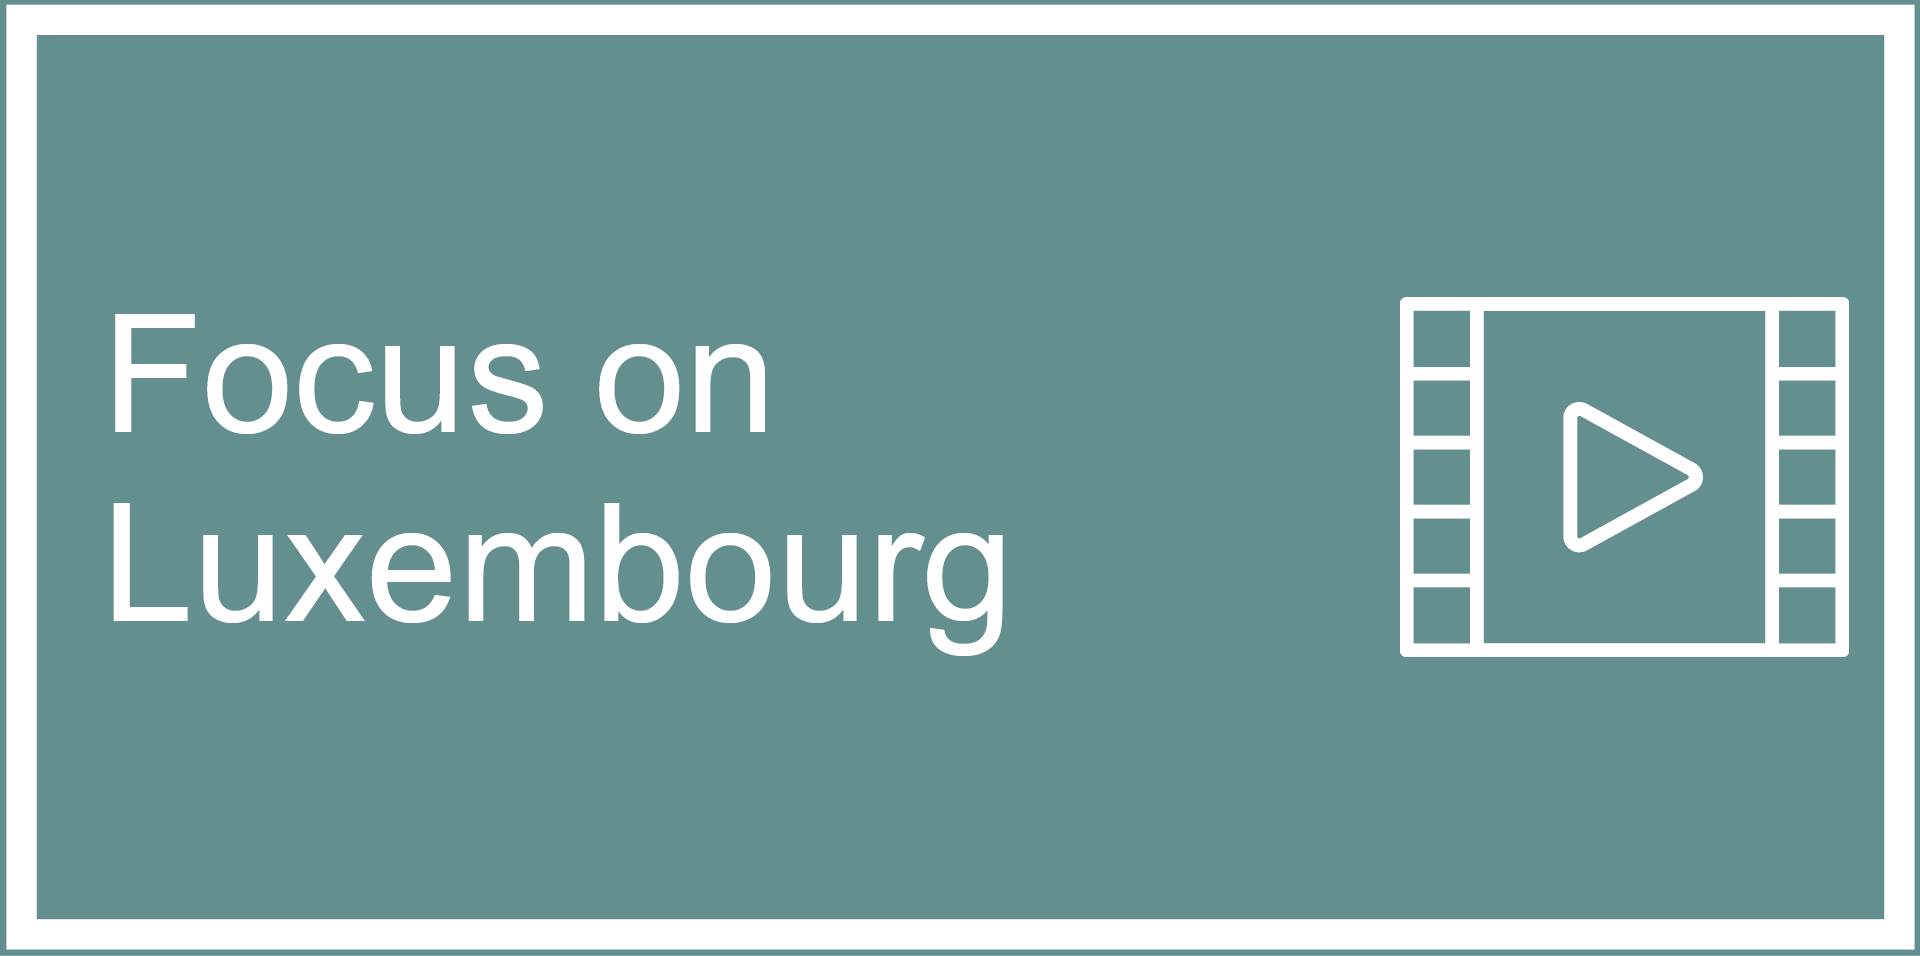 Focus on Luxembourg